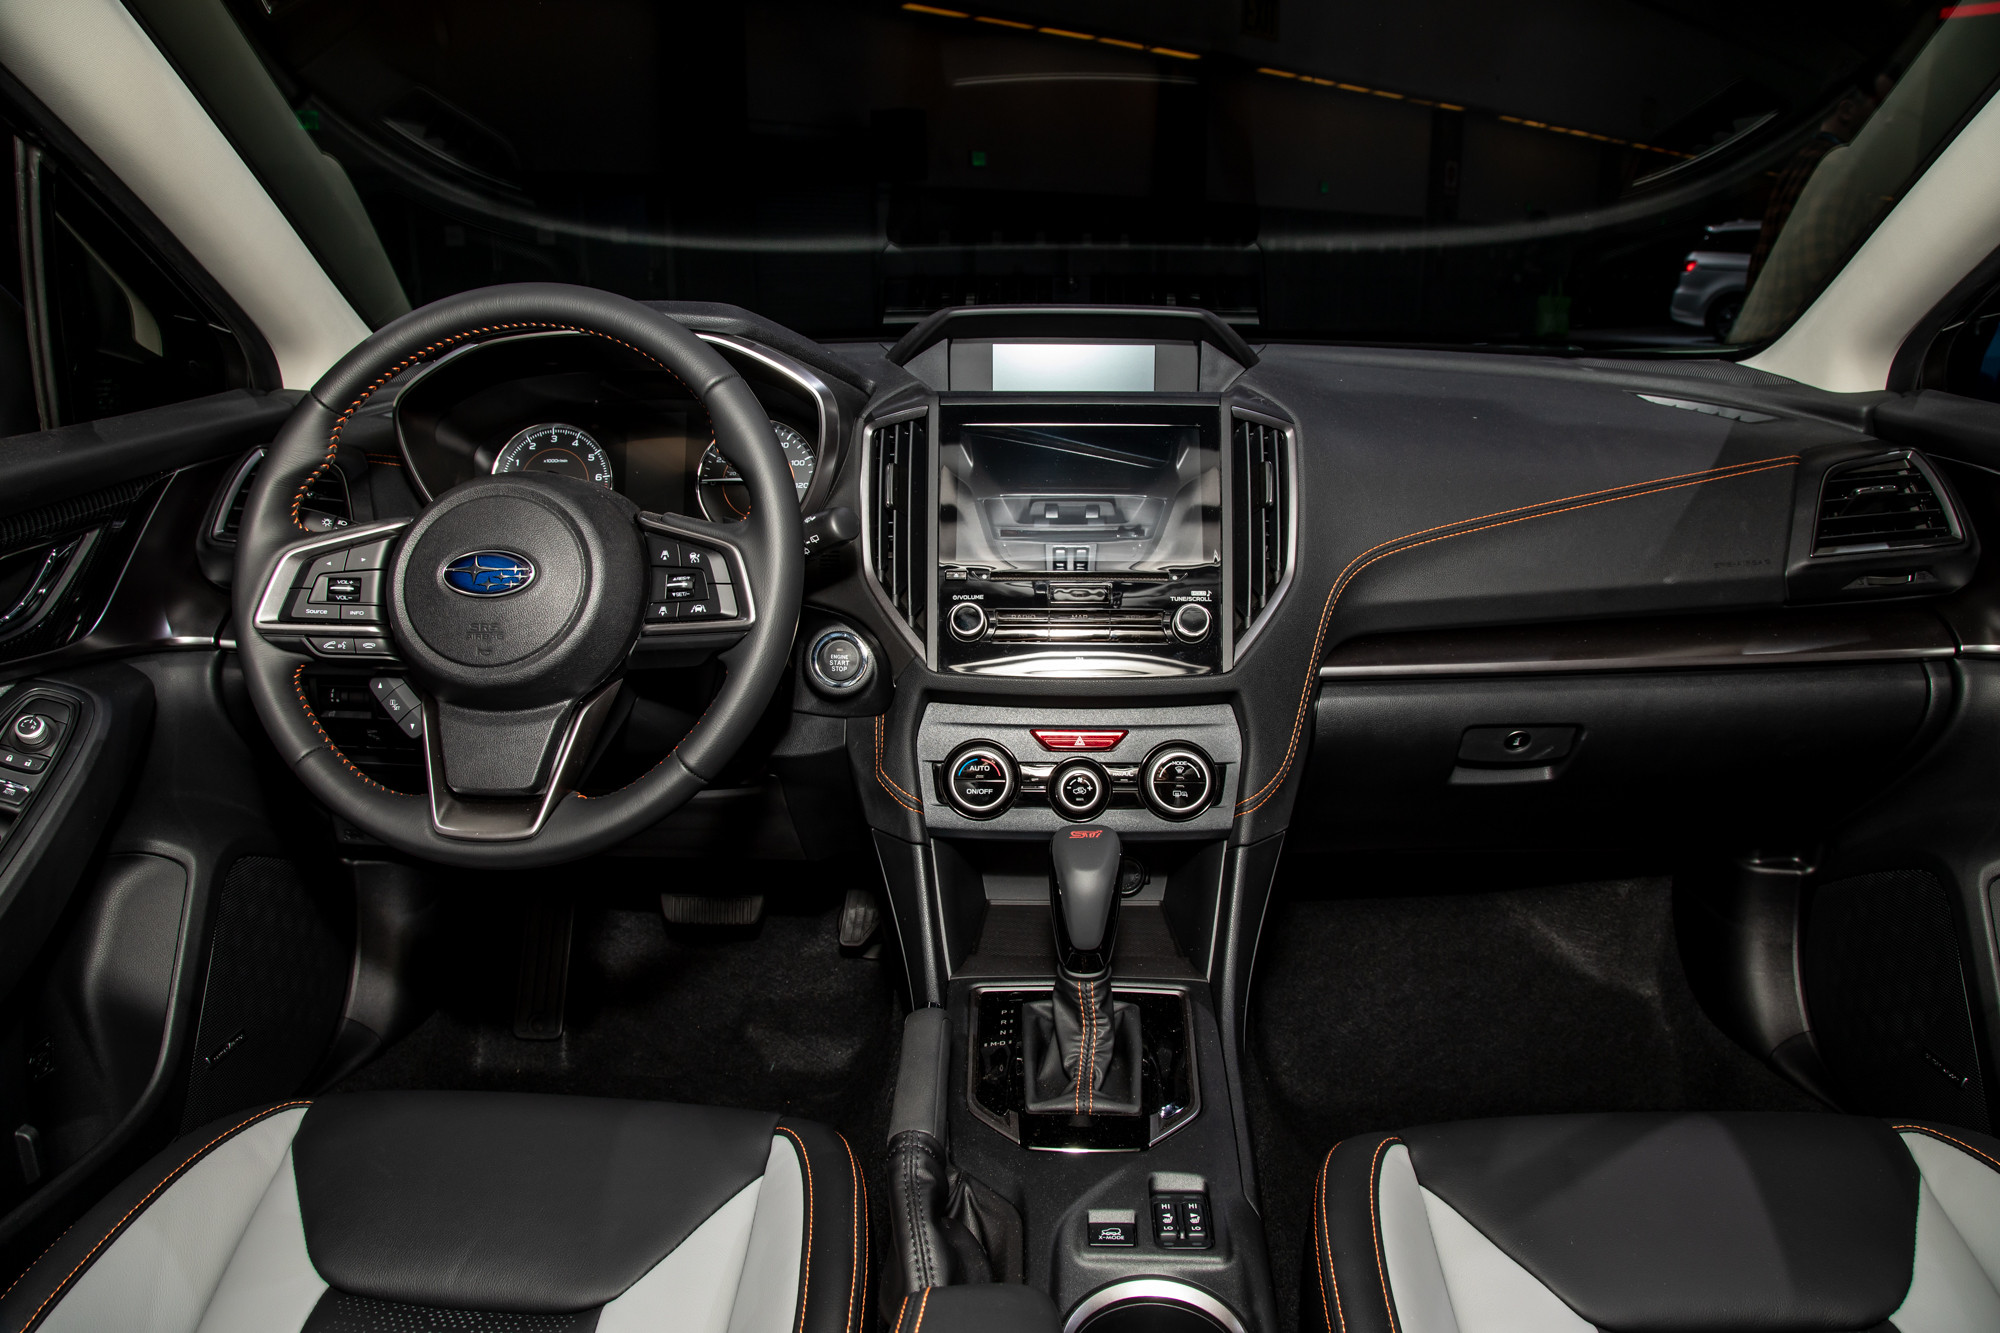 subaru-crosstrek-2020-04-cockpit-shot--interior.jpg